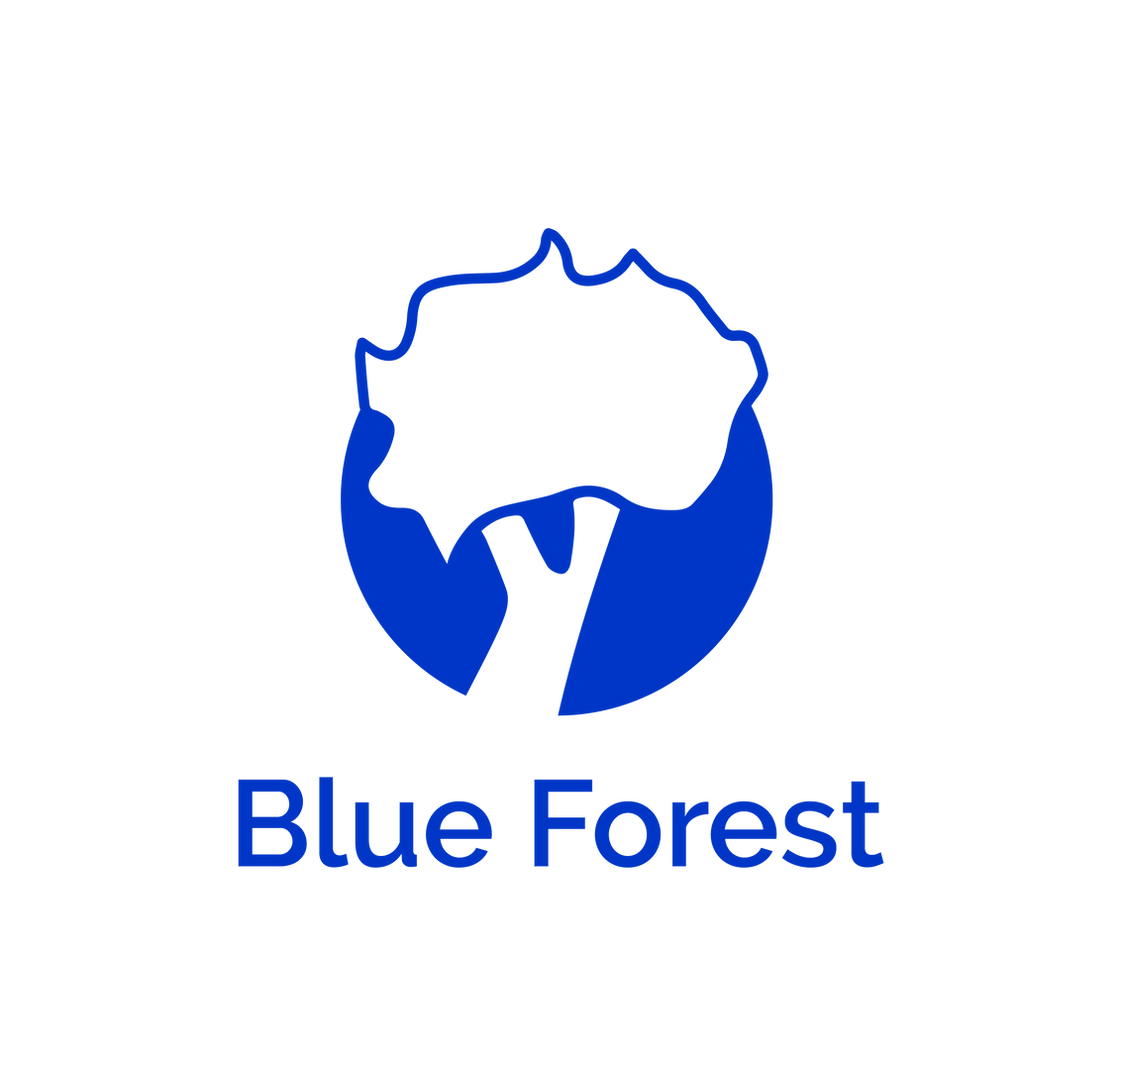 Blue forest.png